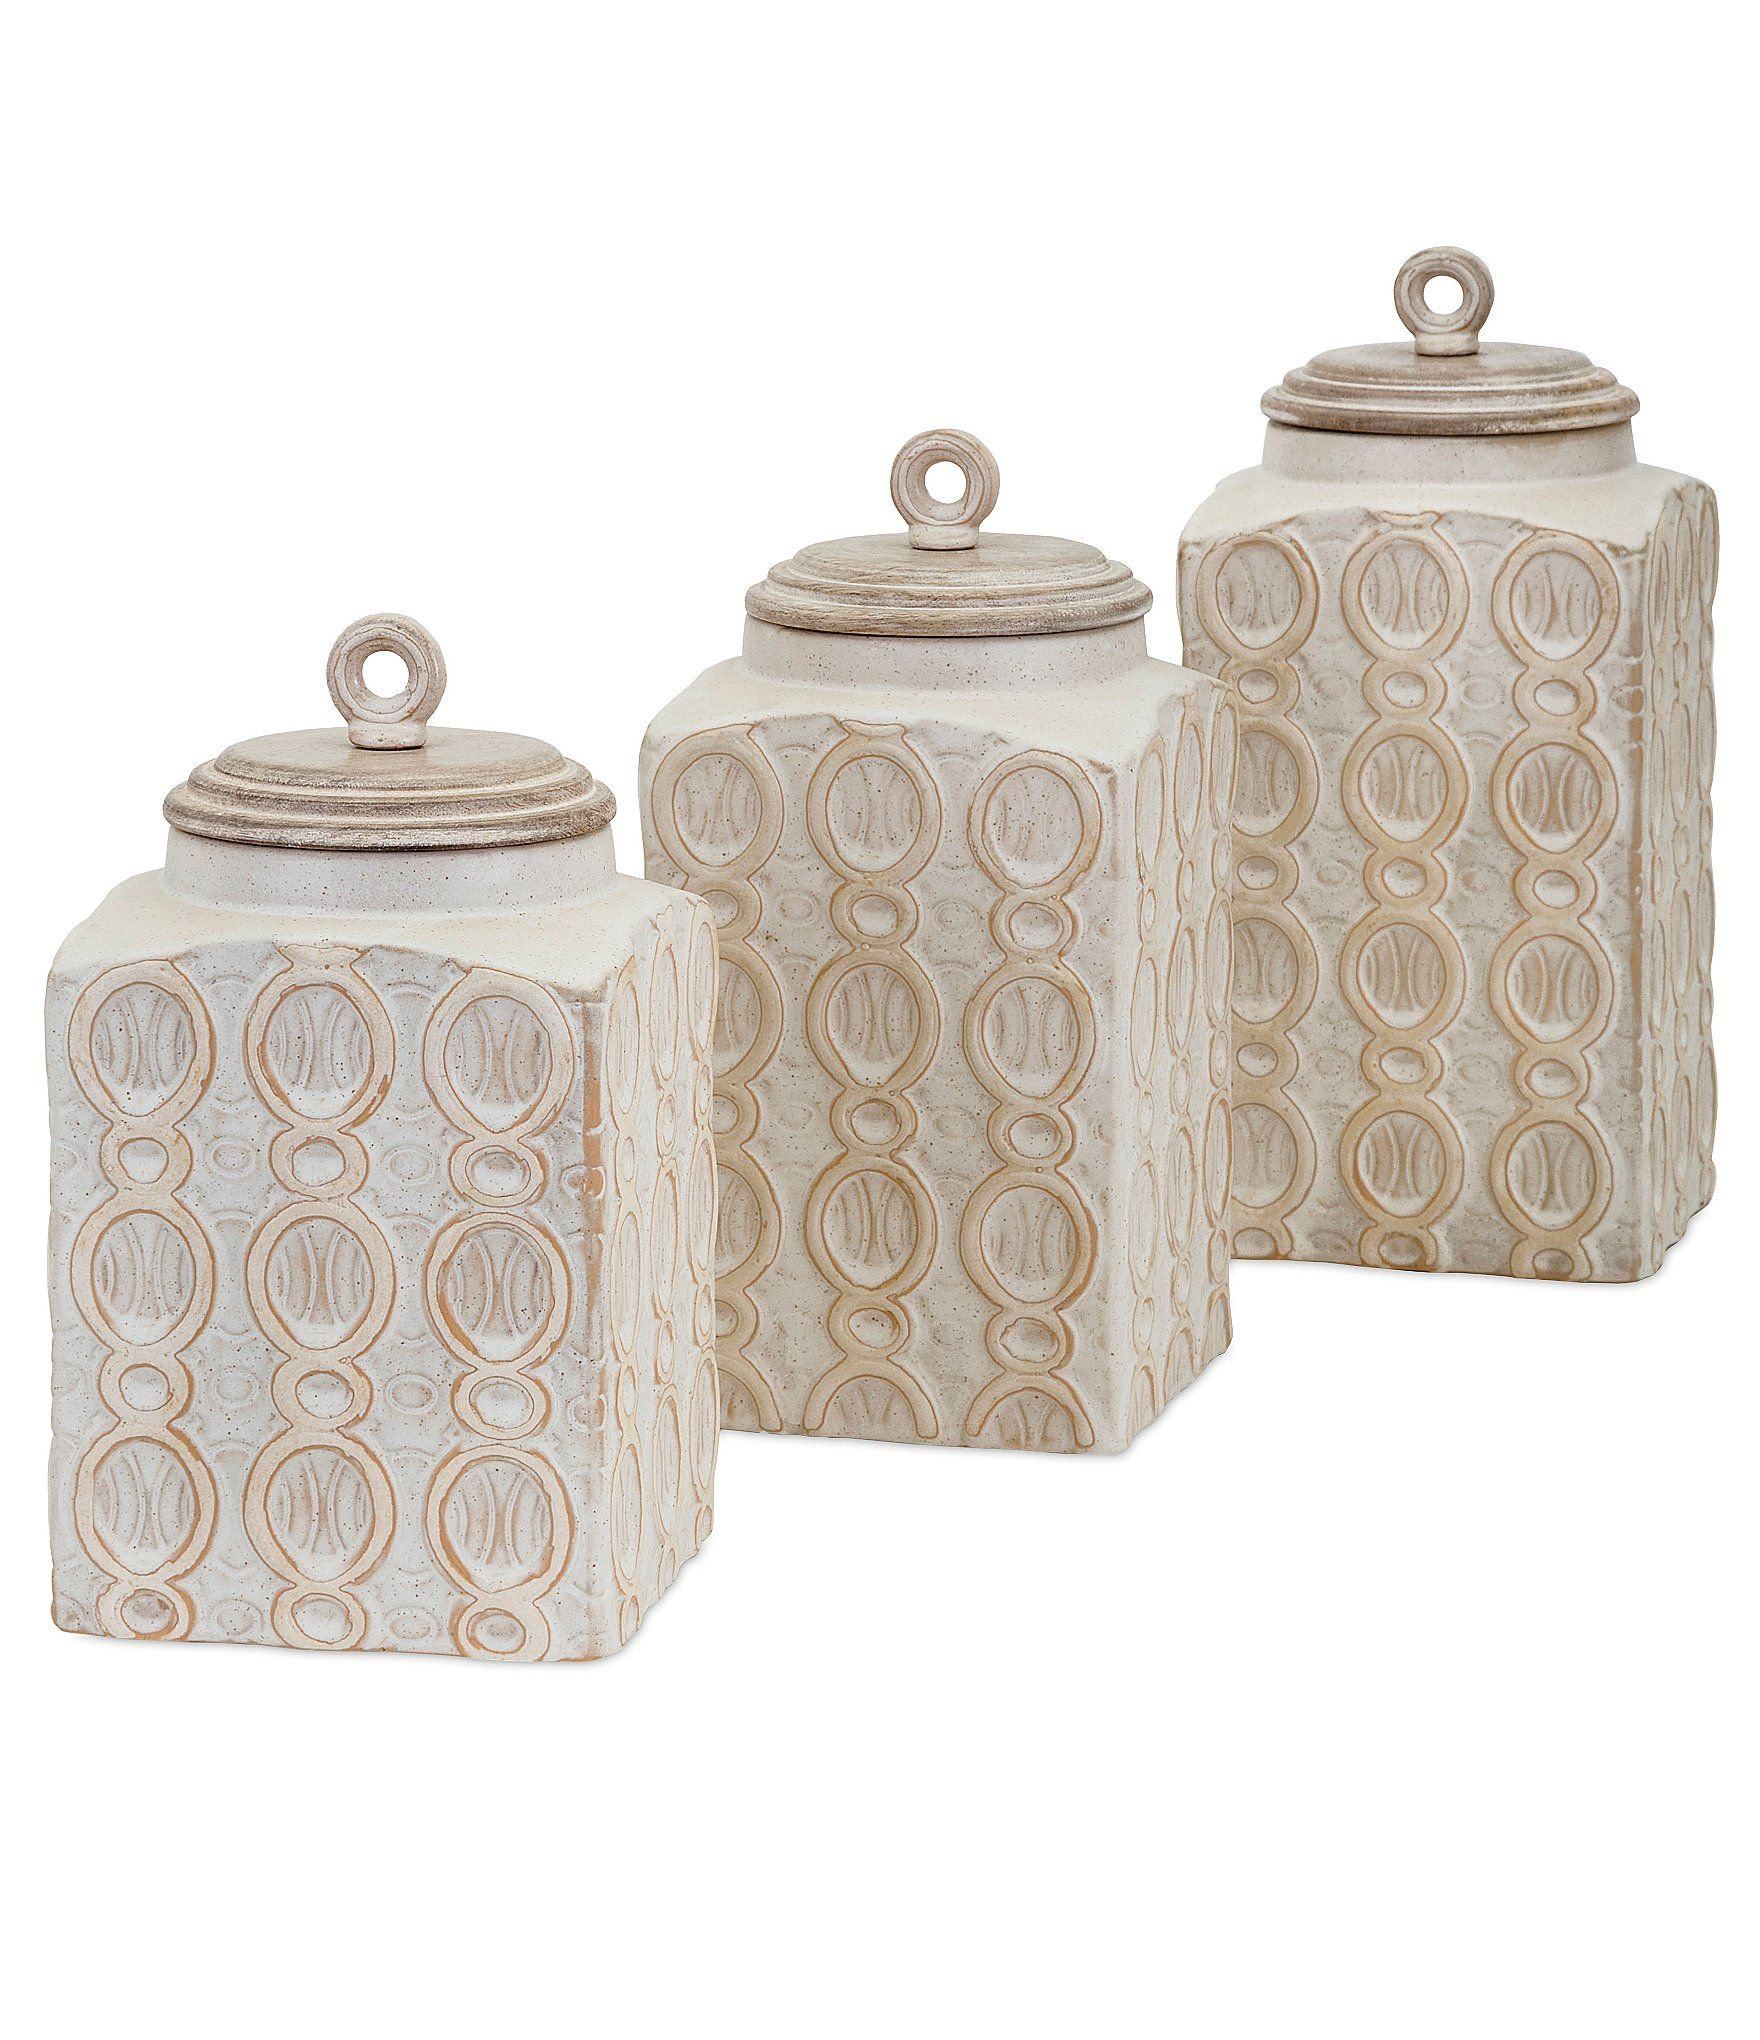 Imax Dreanna Canisters Set of 3